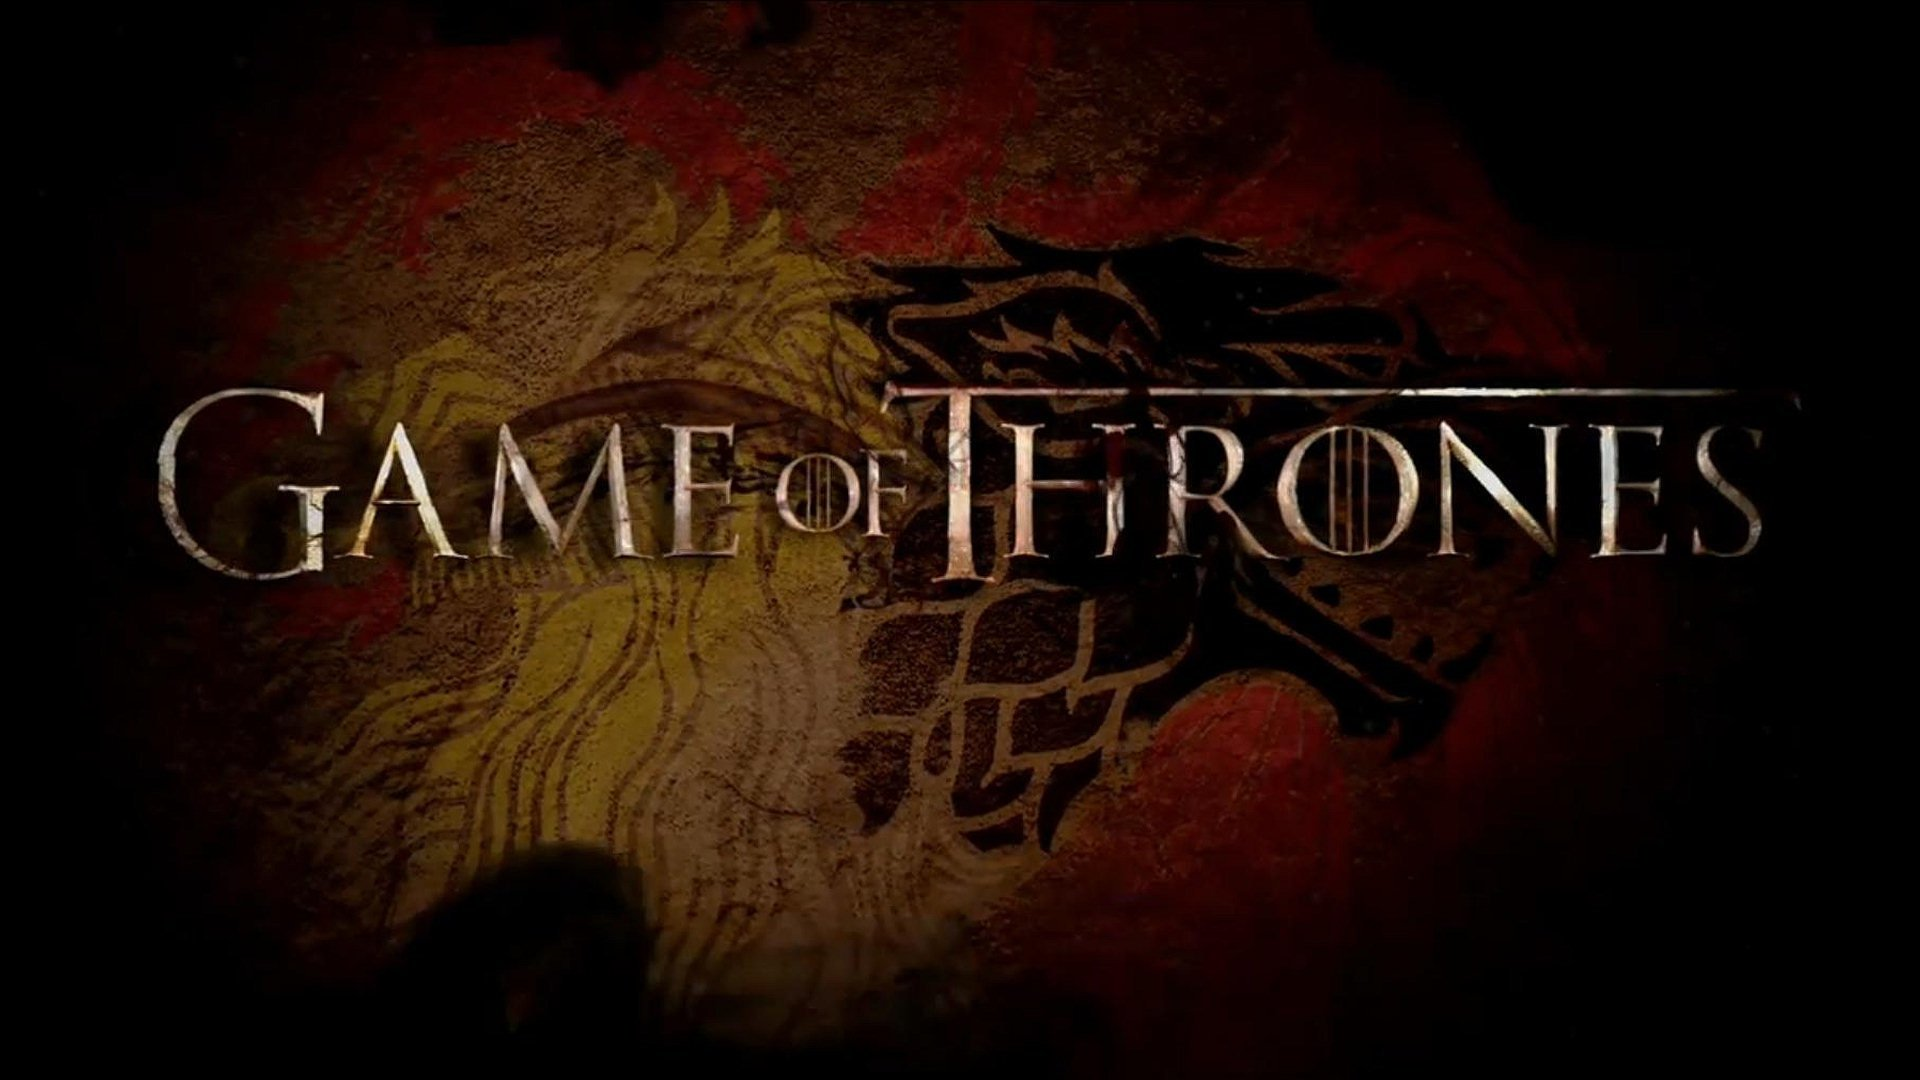 Game Of Thrones wallpapers 1920x1080 Full HD 1080p desktop